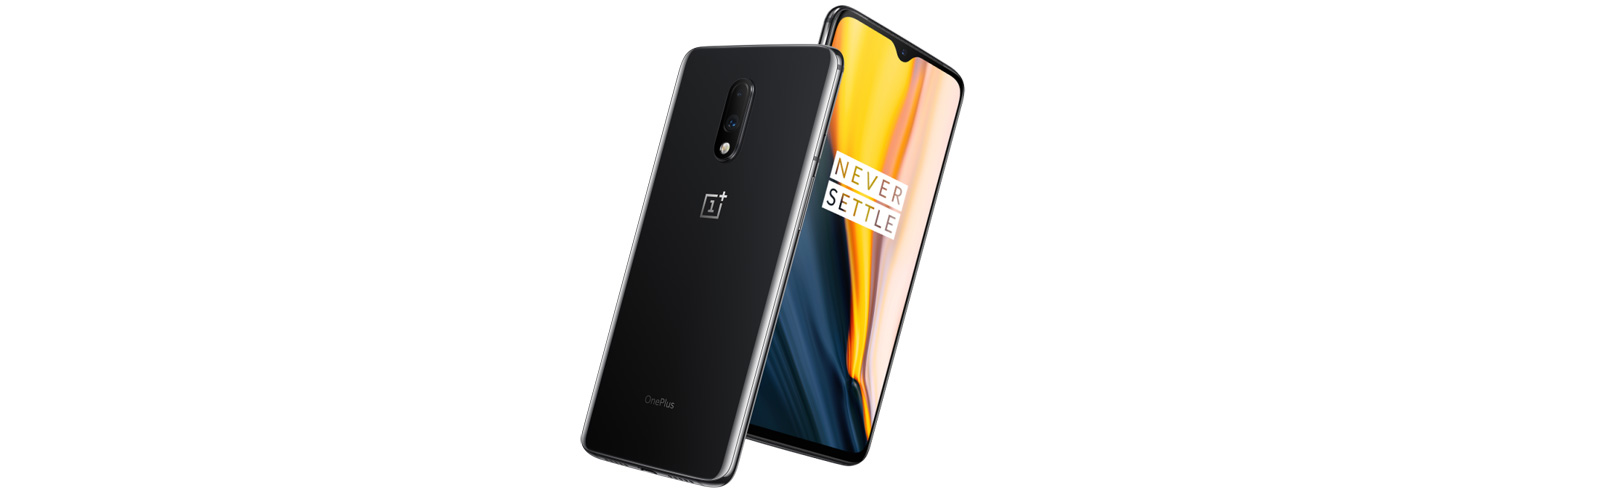 Grab a OnePlus 7 8GB+256GB for $399.99 from GearBest, coupon included